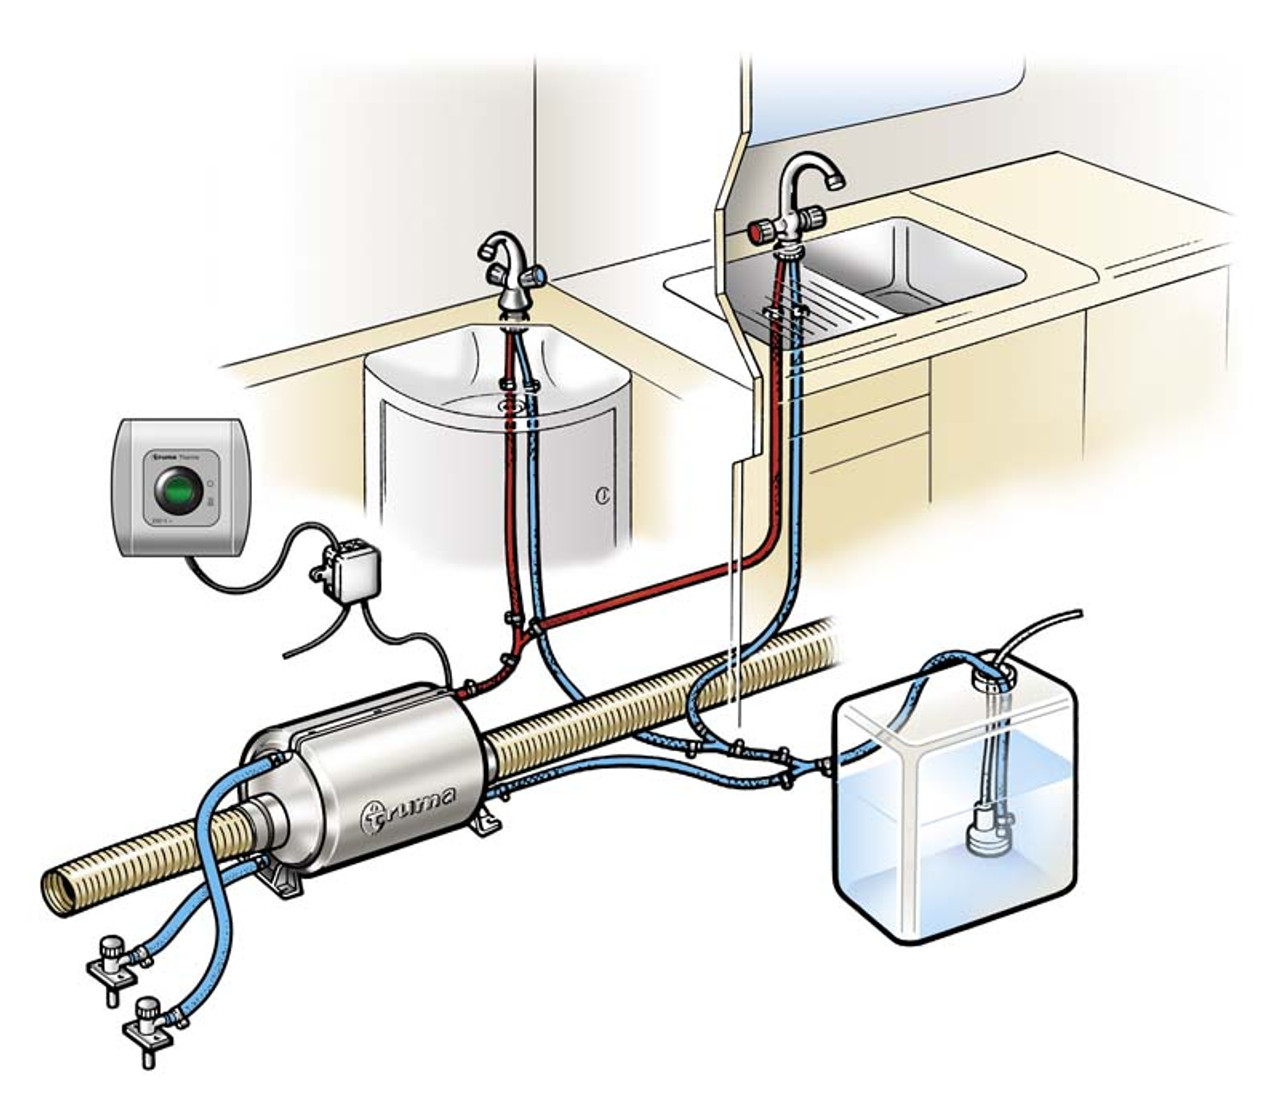 Diagram of an example Truma Therme installation.